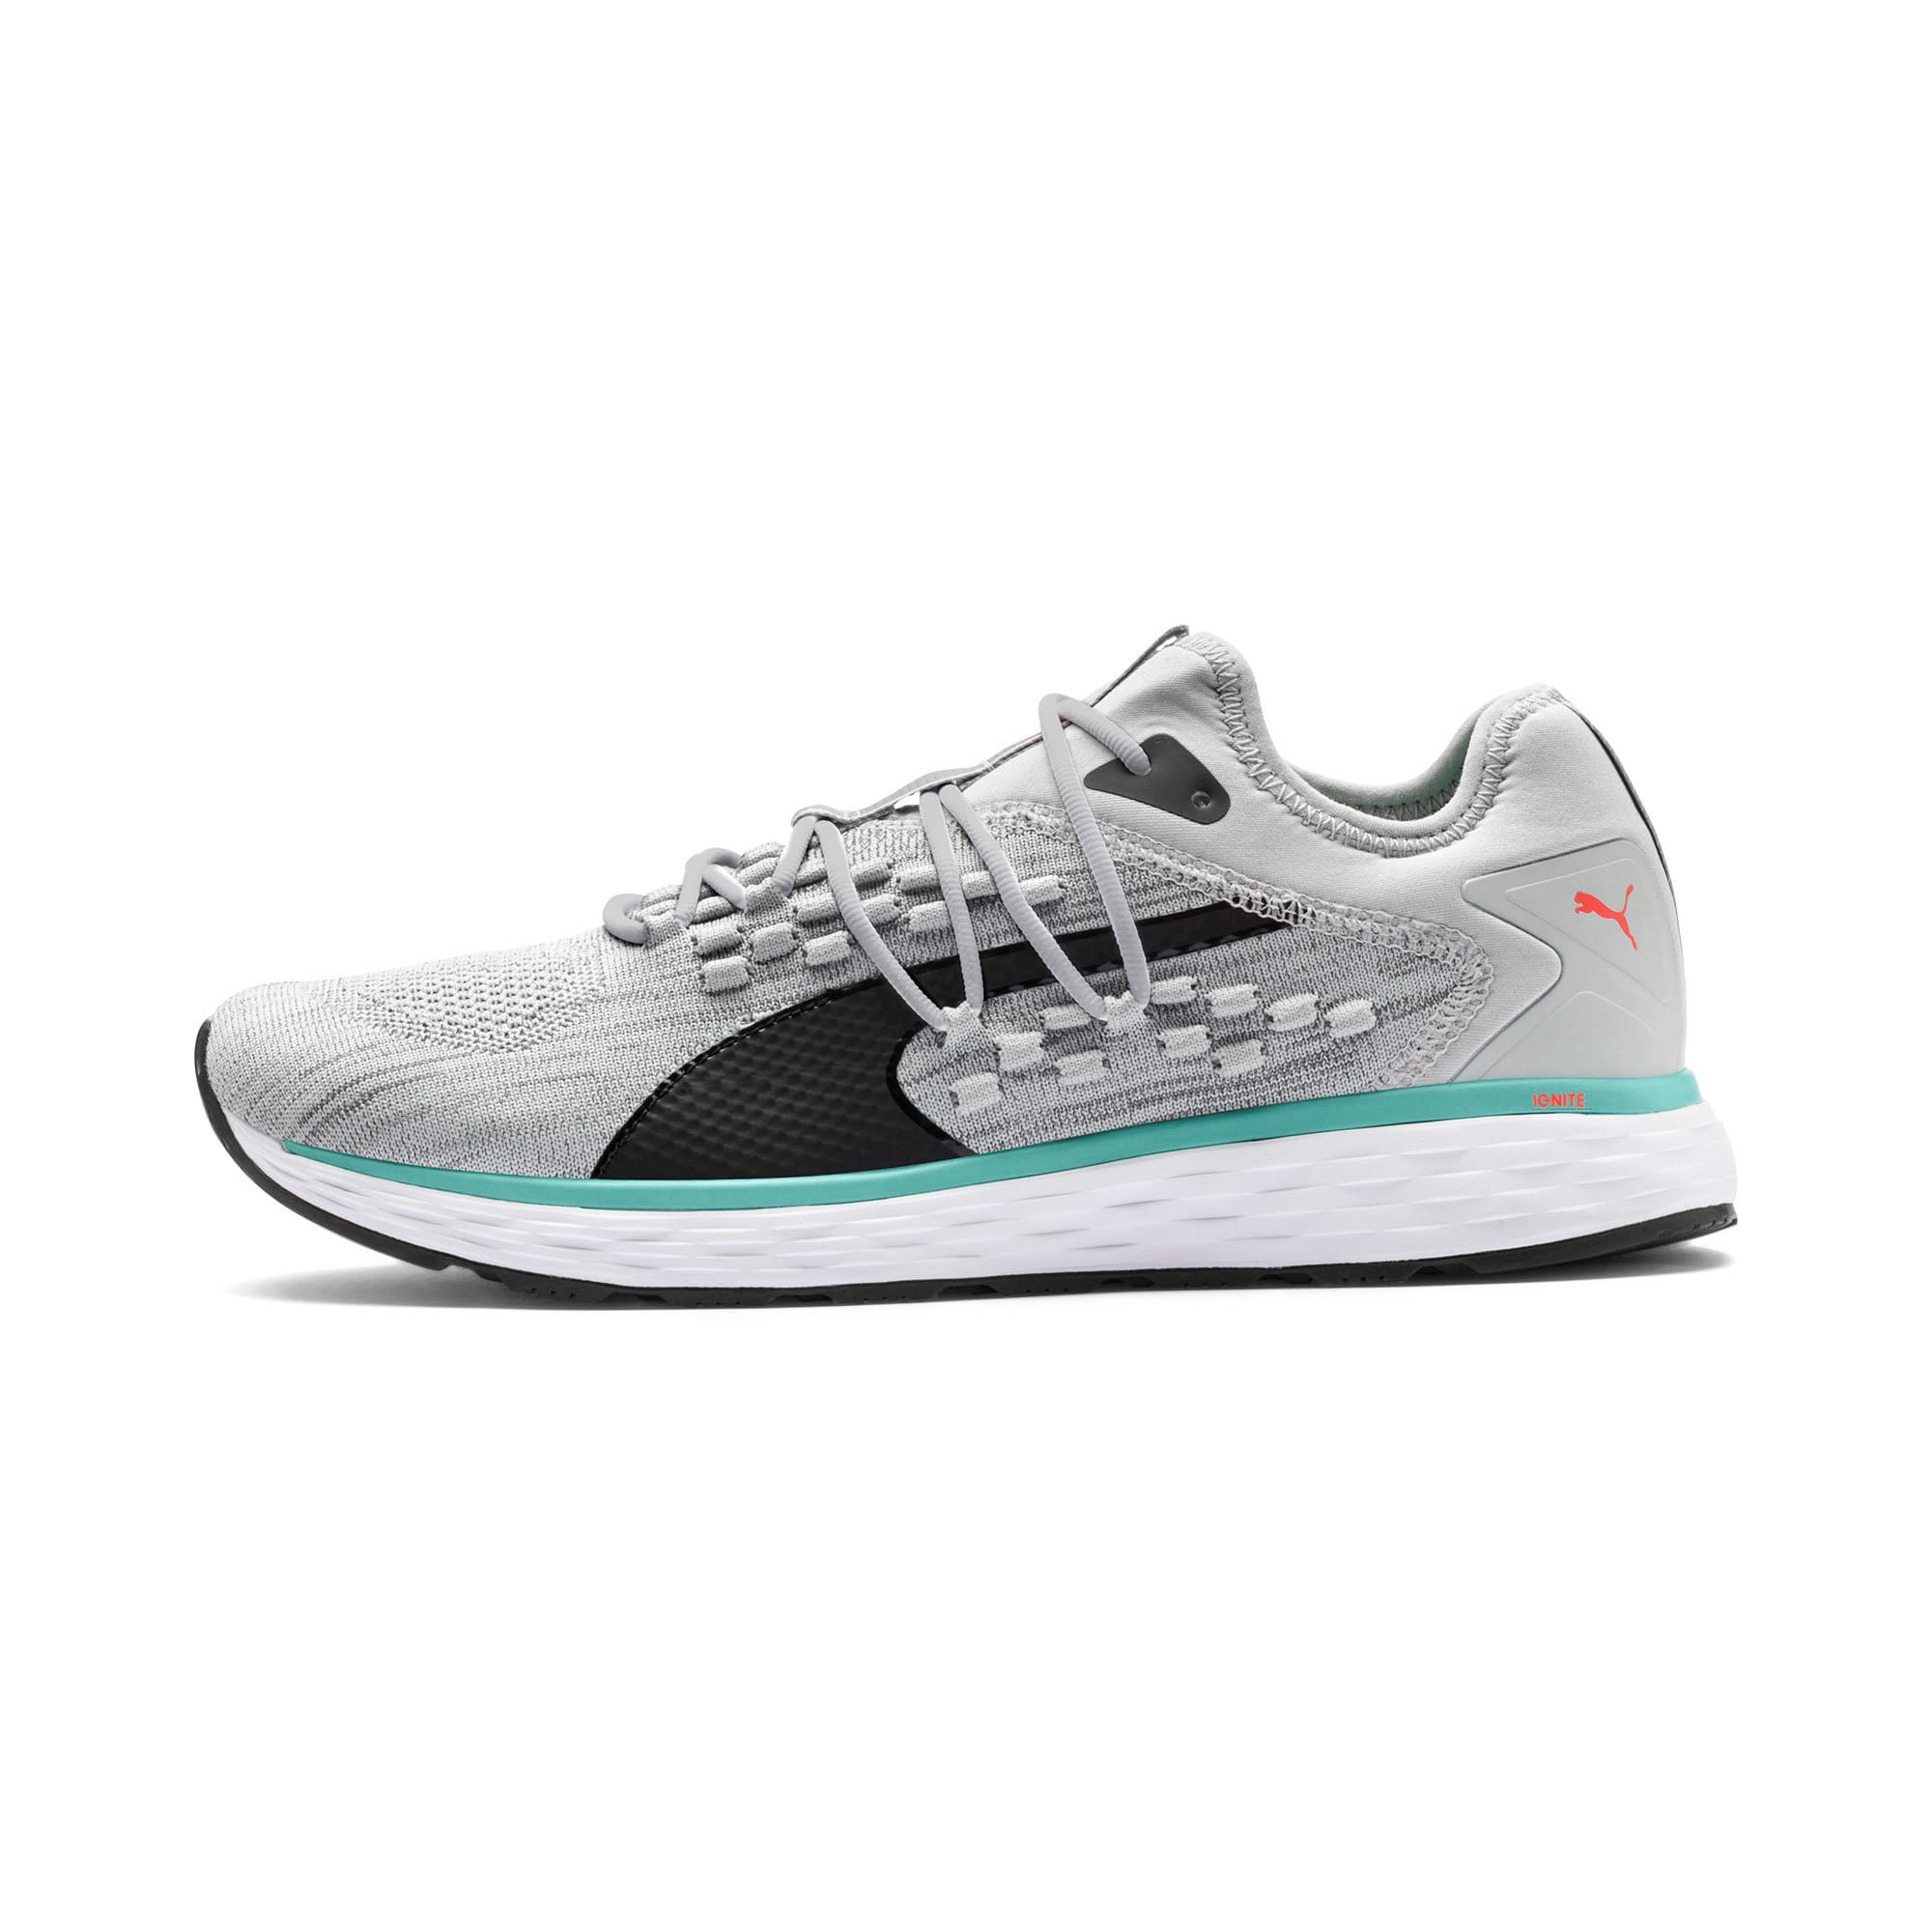 Thumbnail 1 of SPEED FUSEFIT Men's Running Shoes, High Rise-Blue Turquoise, medium